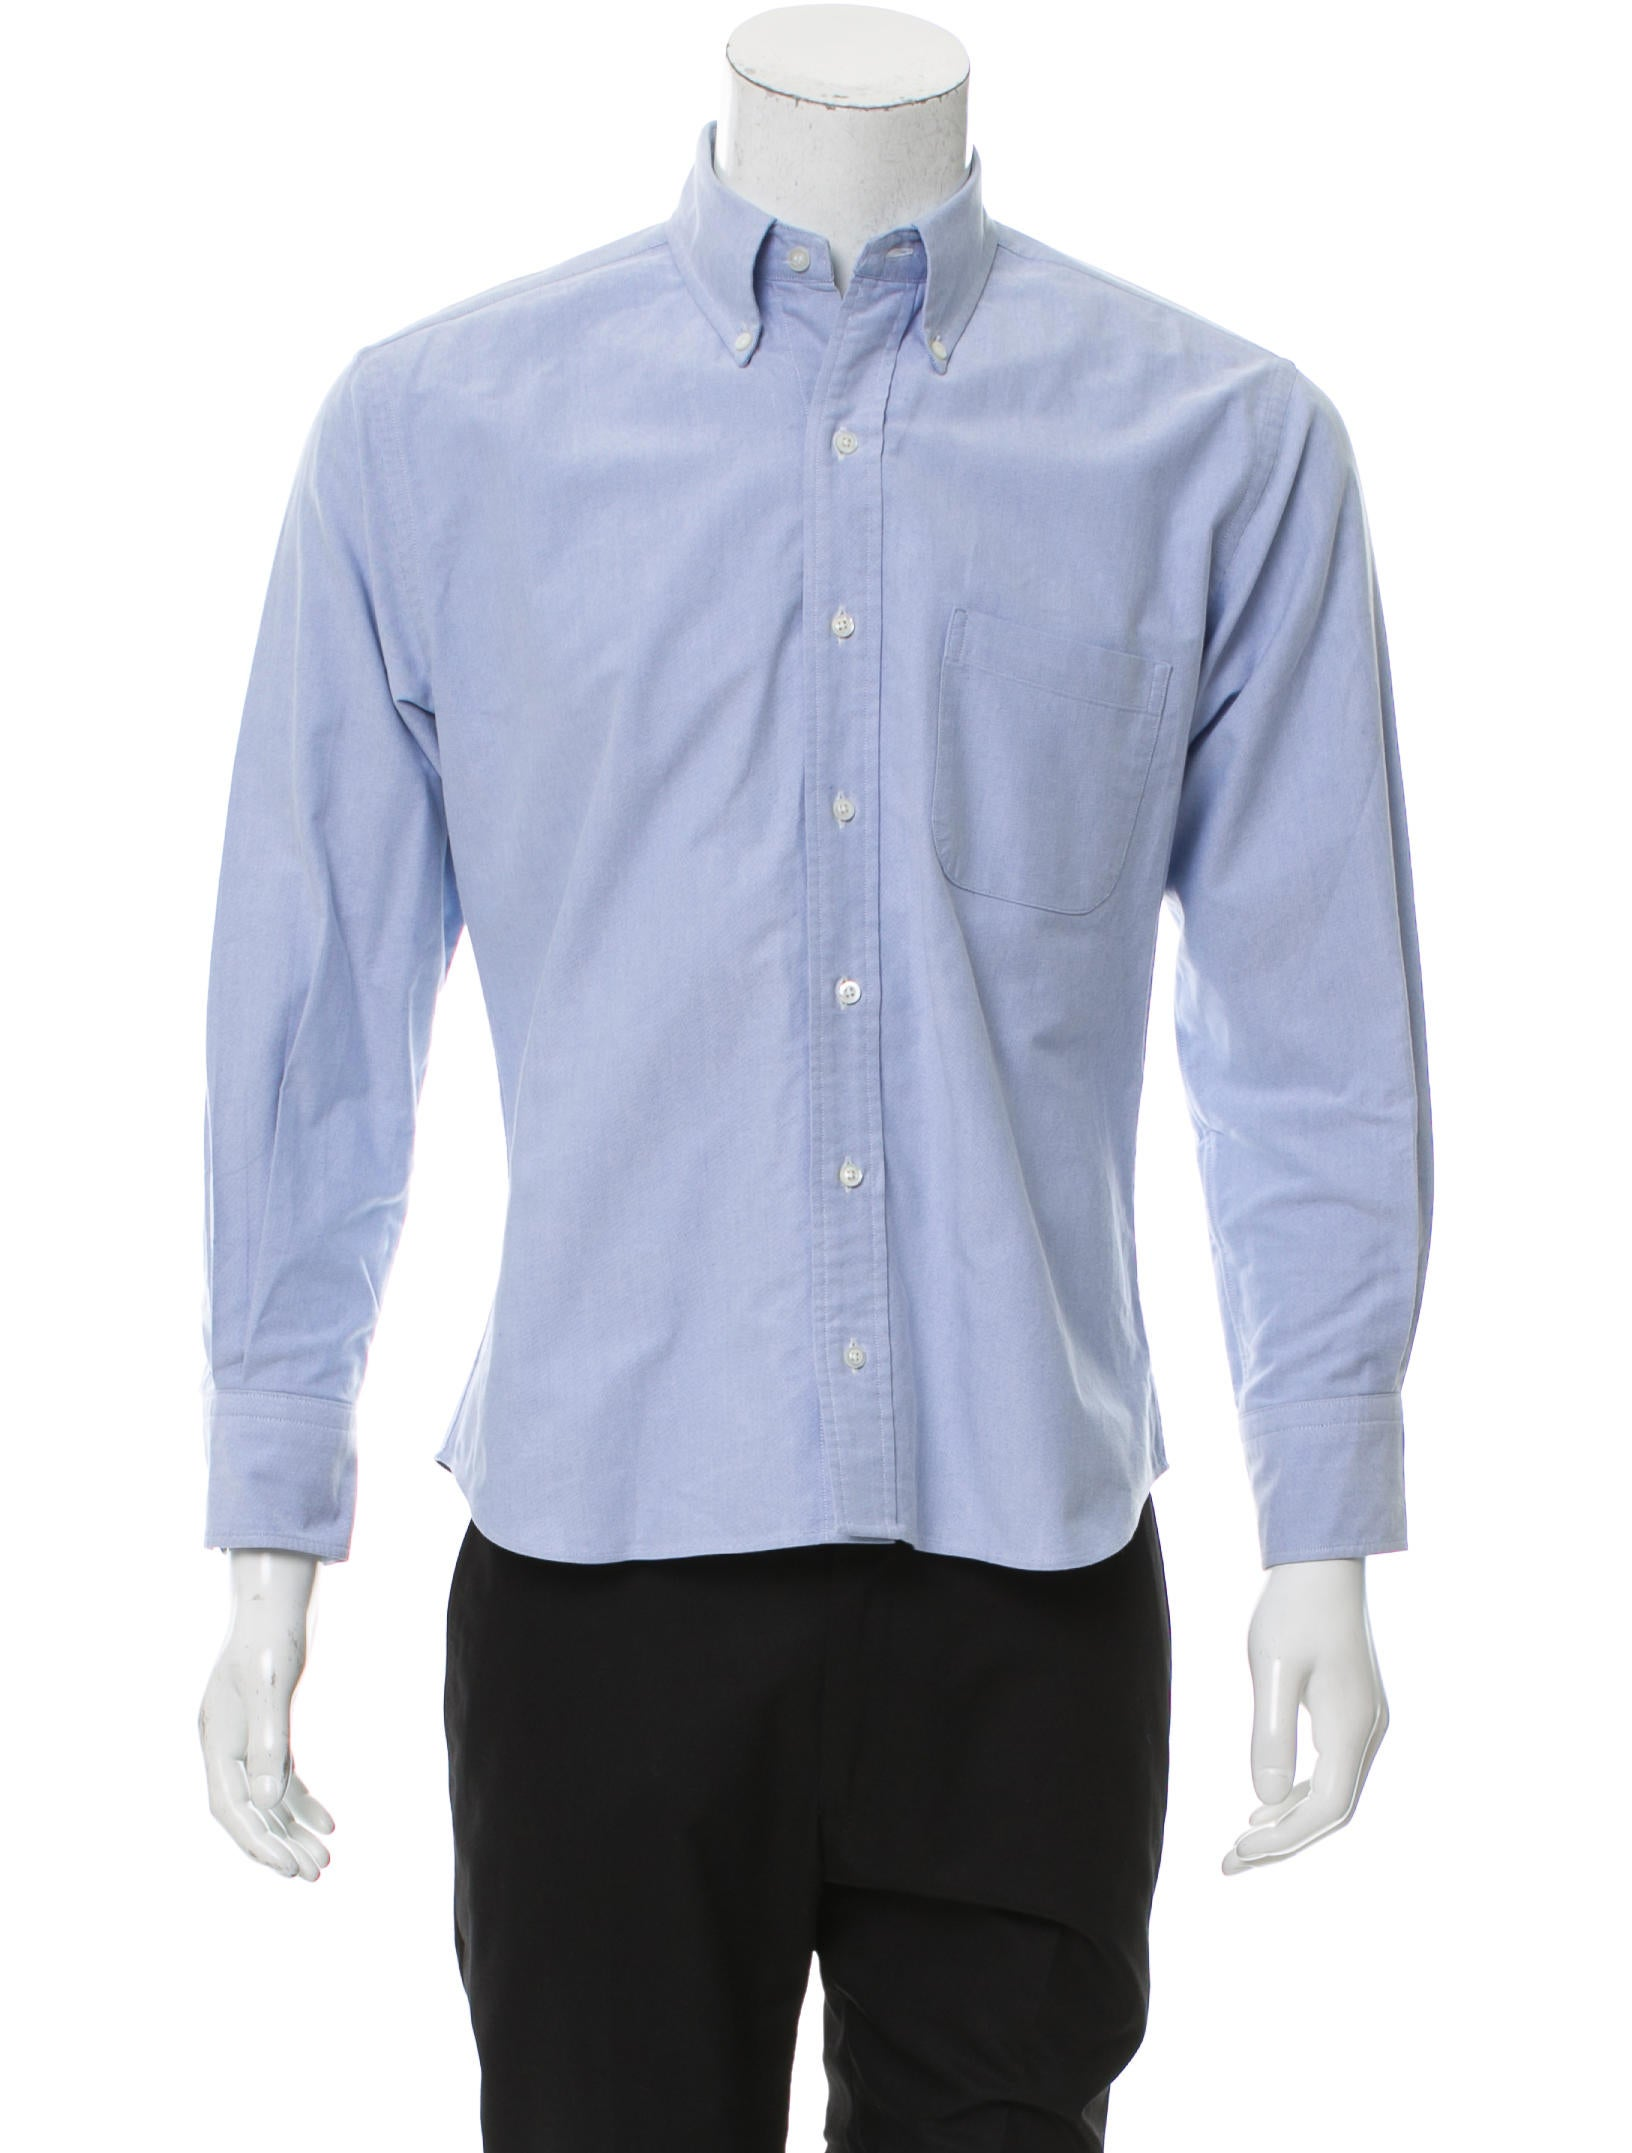 Thom Browne Point Collar Button Up Shirt Clothing